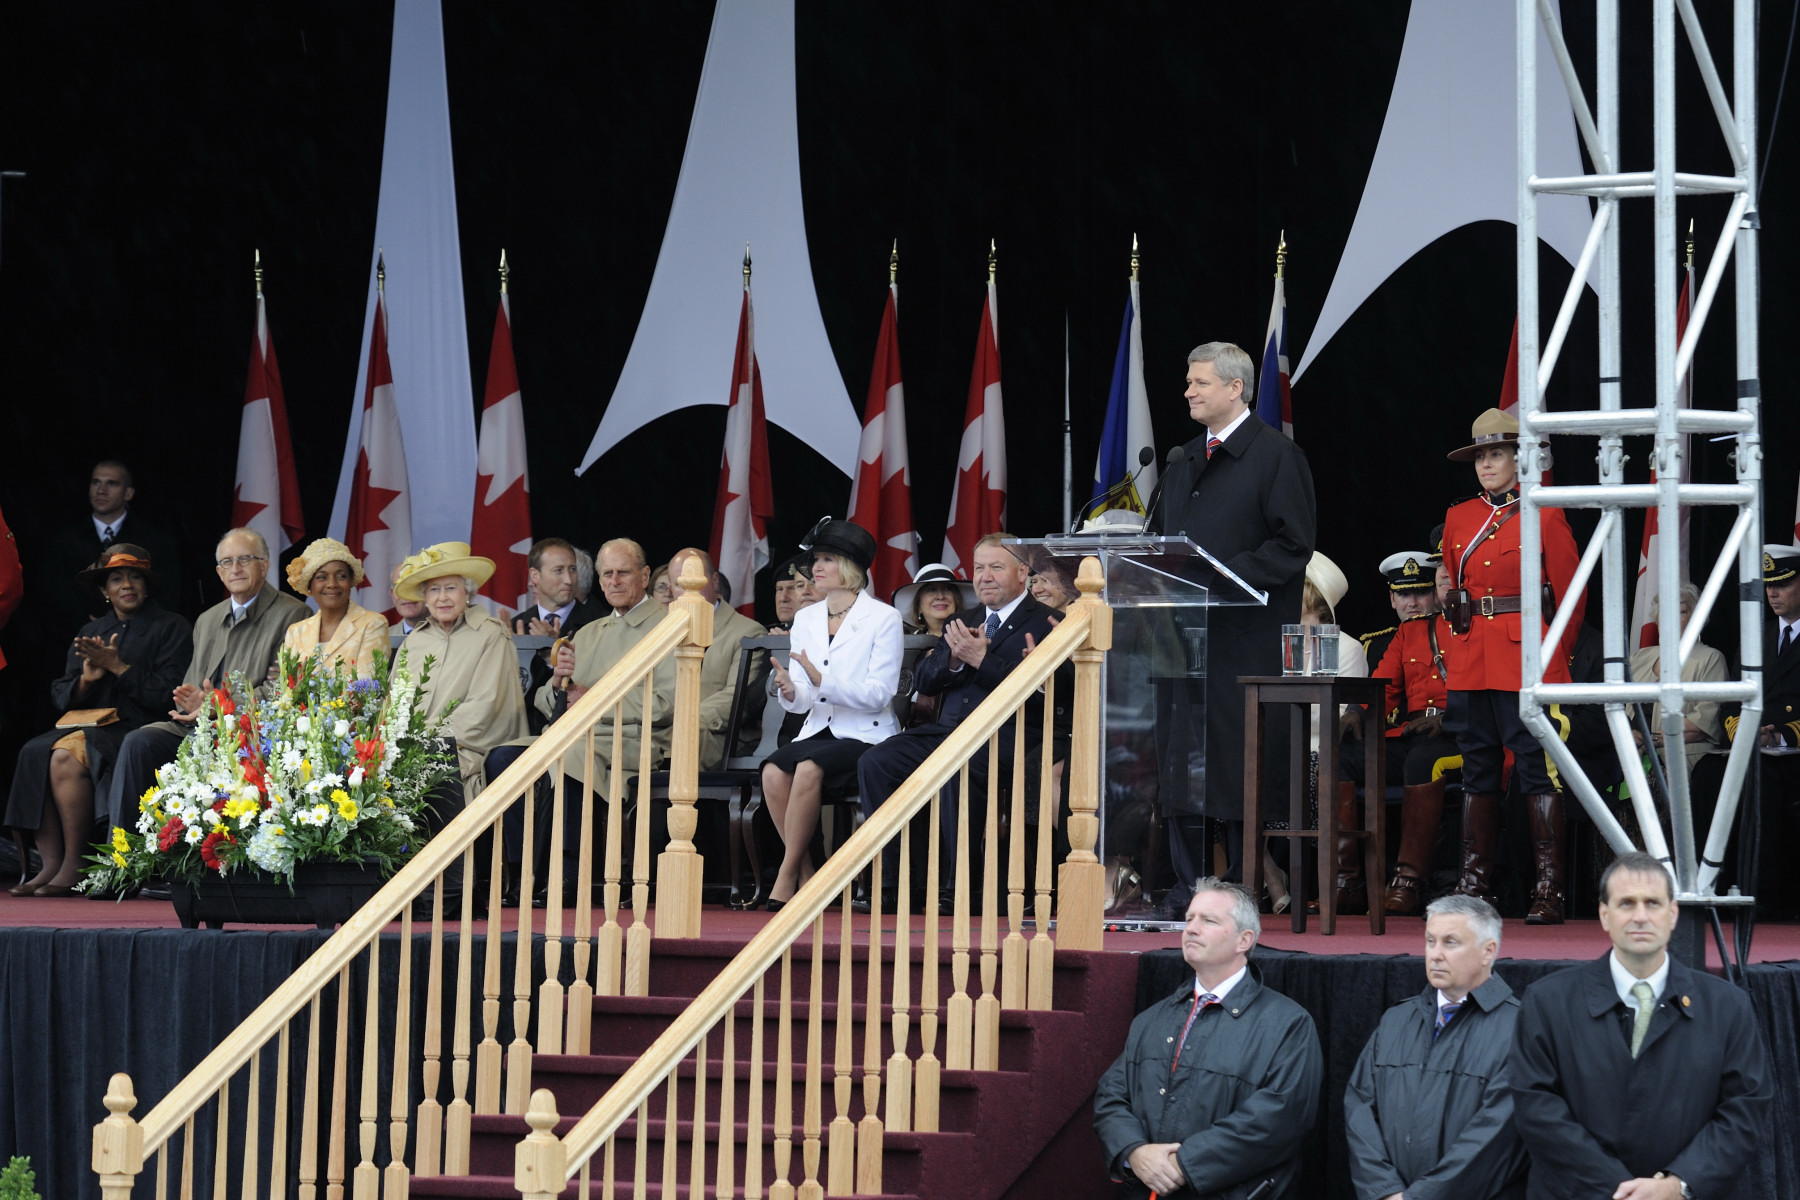 Prime Minister Stephen Harper delivered an address during the official welcoming ceremony.